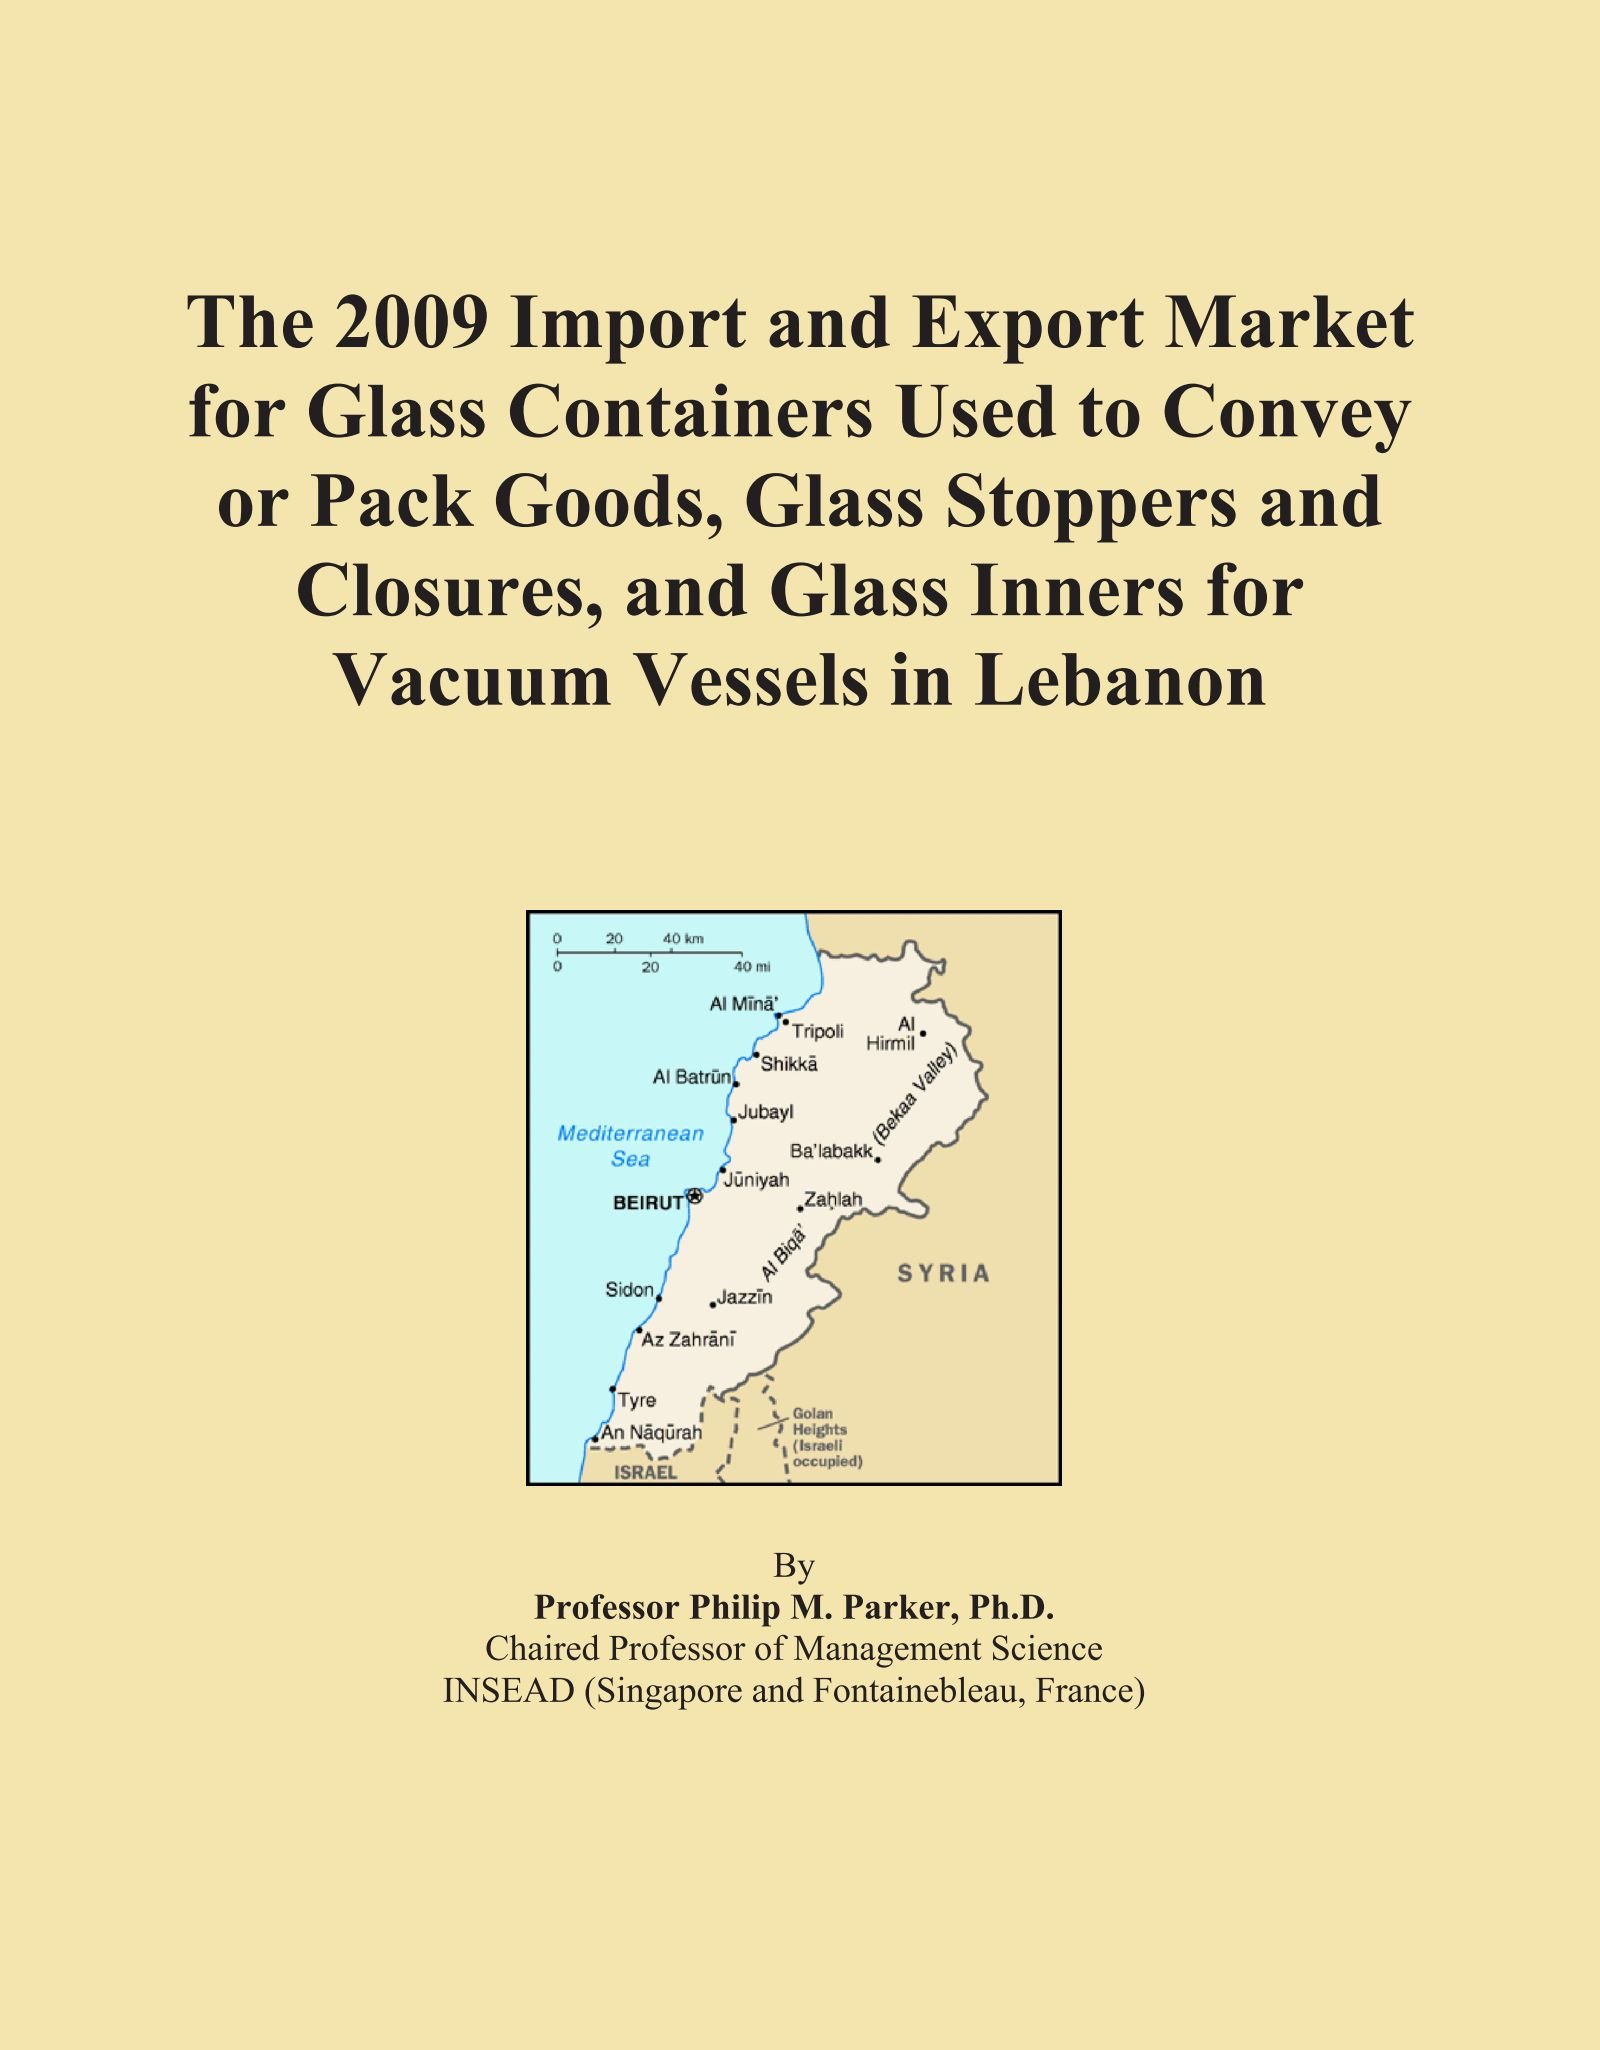 Download The 2009 Import and Export Market for Glass Containers Used to Convey or Pack Goods, Glass Stoppers and Closures, and Glass Inners for Vacuum Vessels in Lebanon PDF